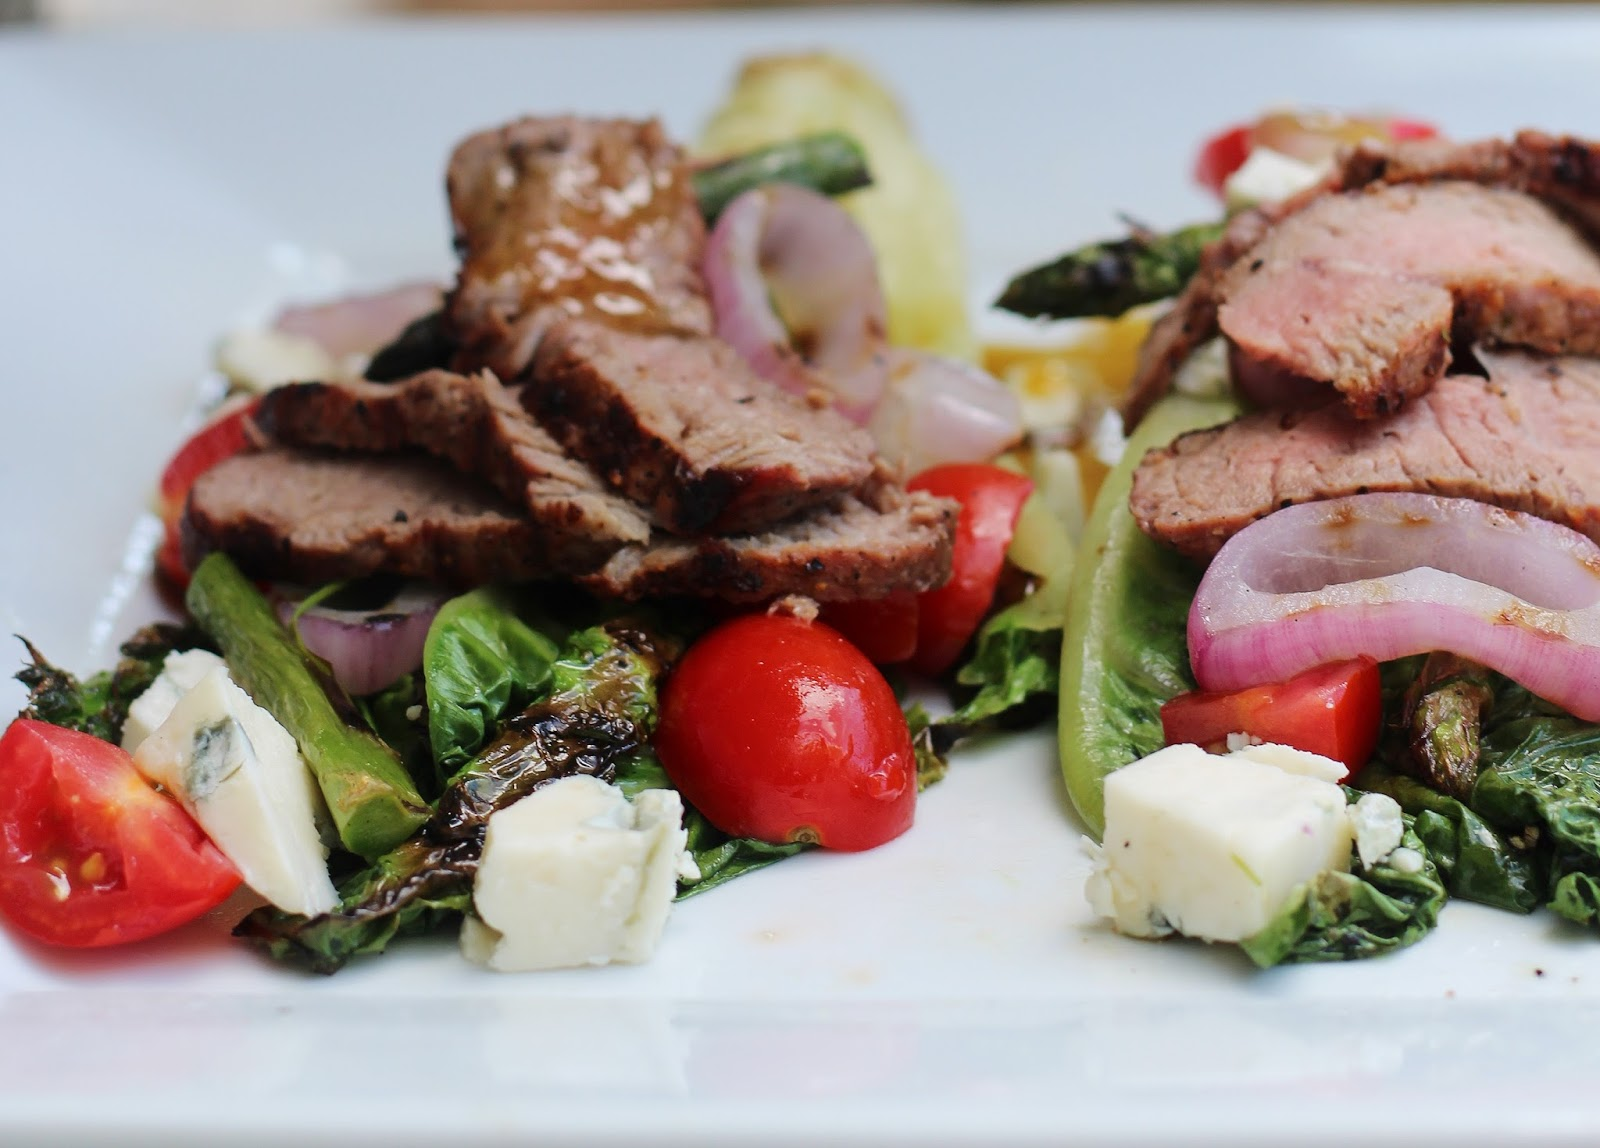 Grilled Steak and Romaine Salad